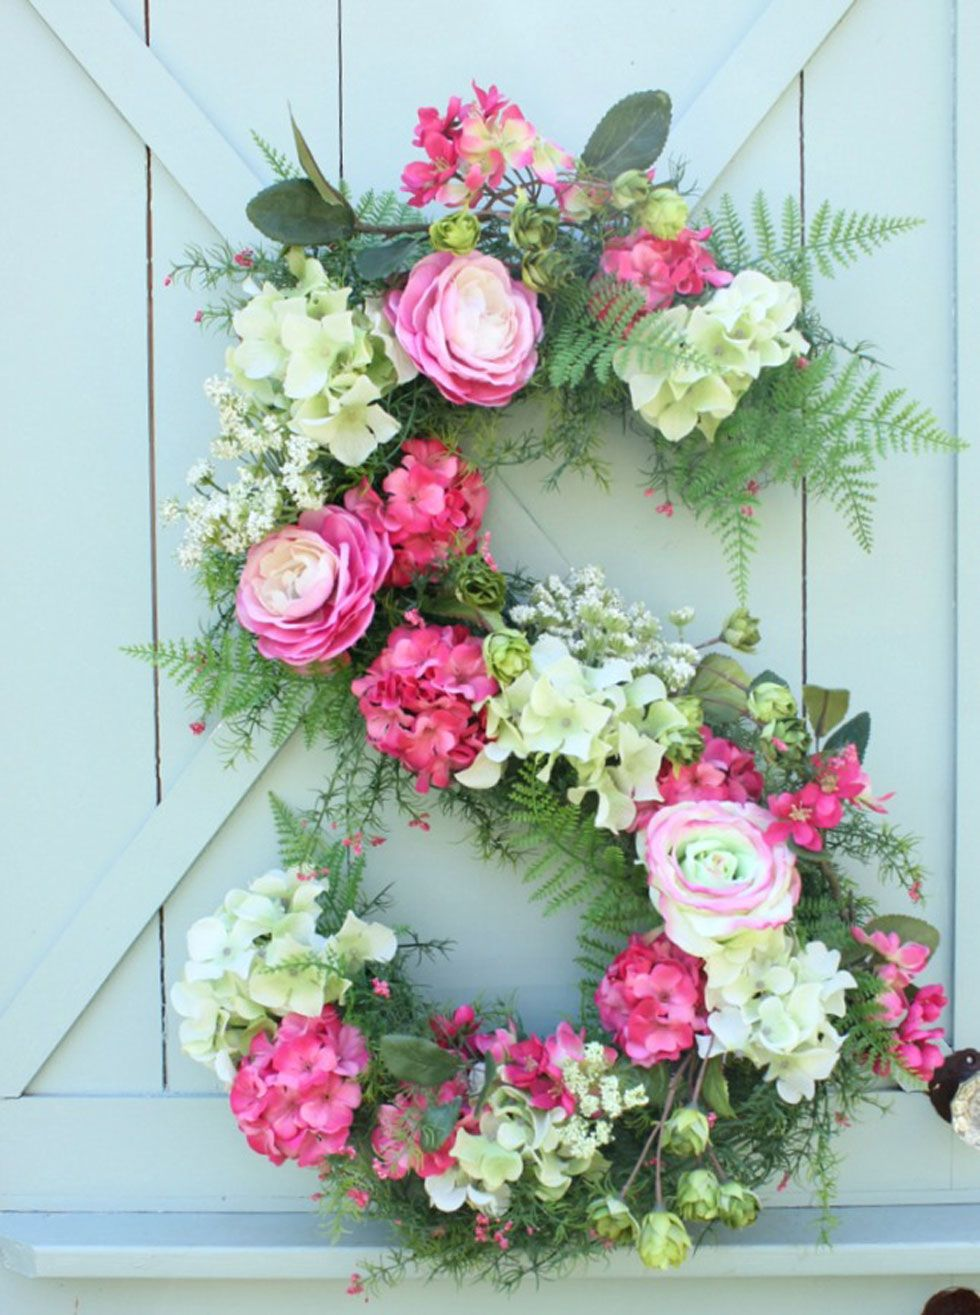 12 Beautiful Decorations to Hang on Your Door That